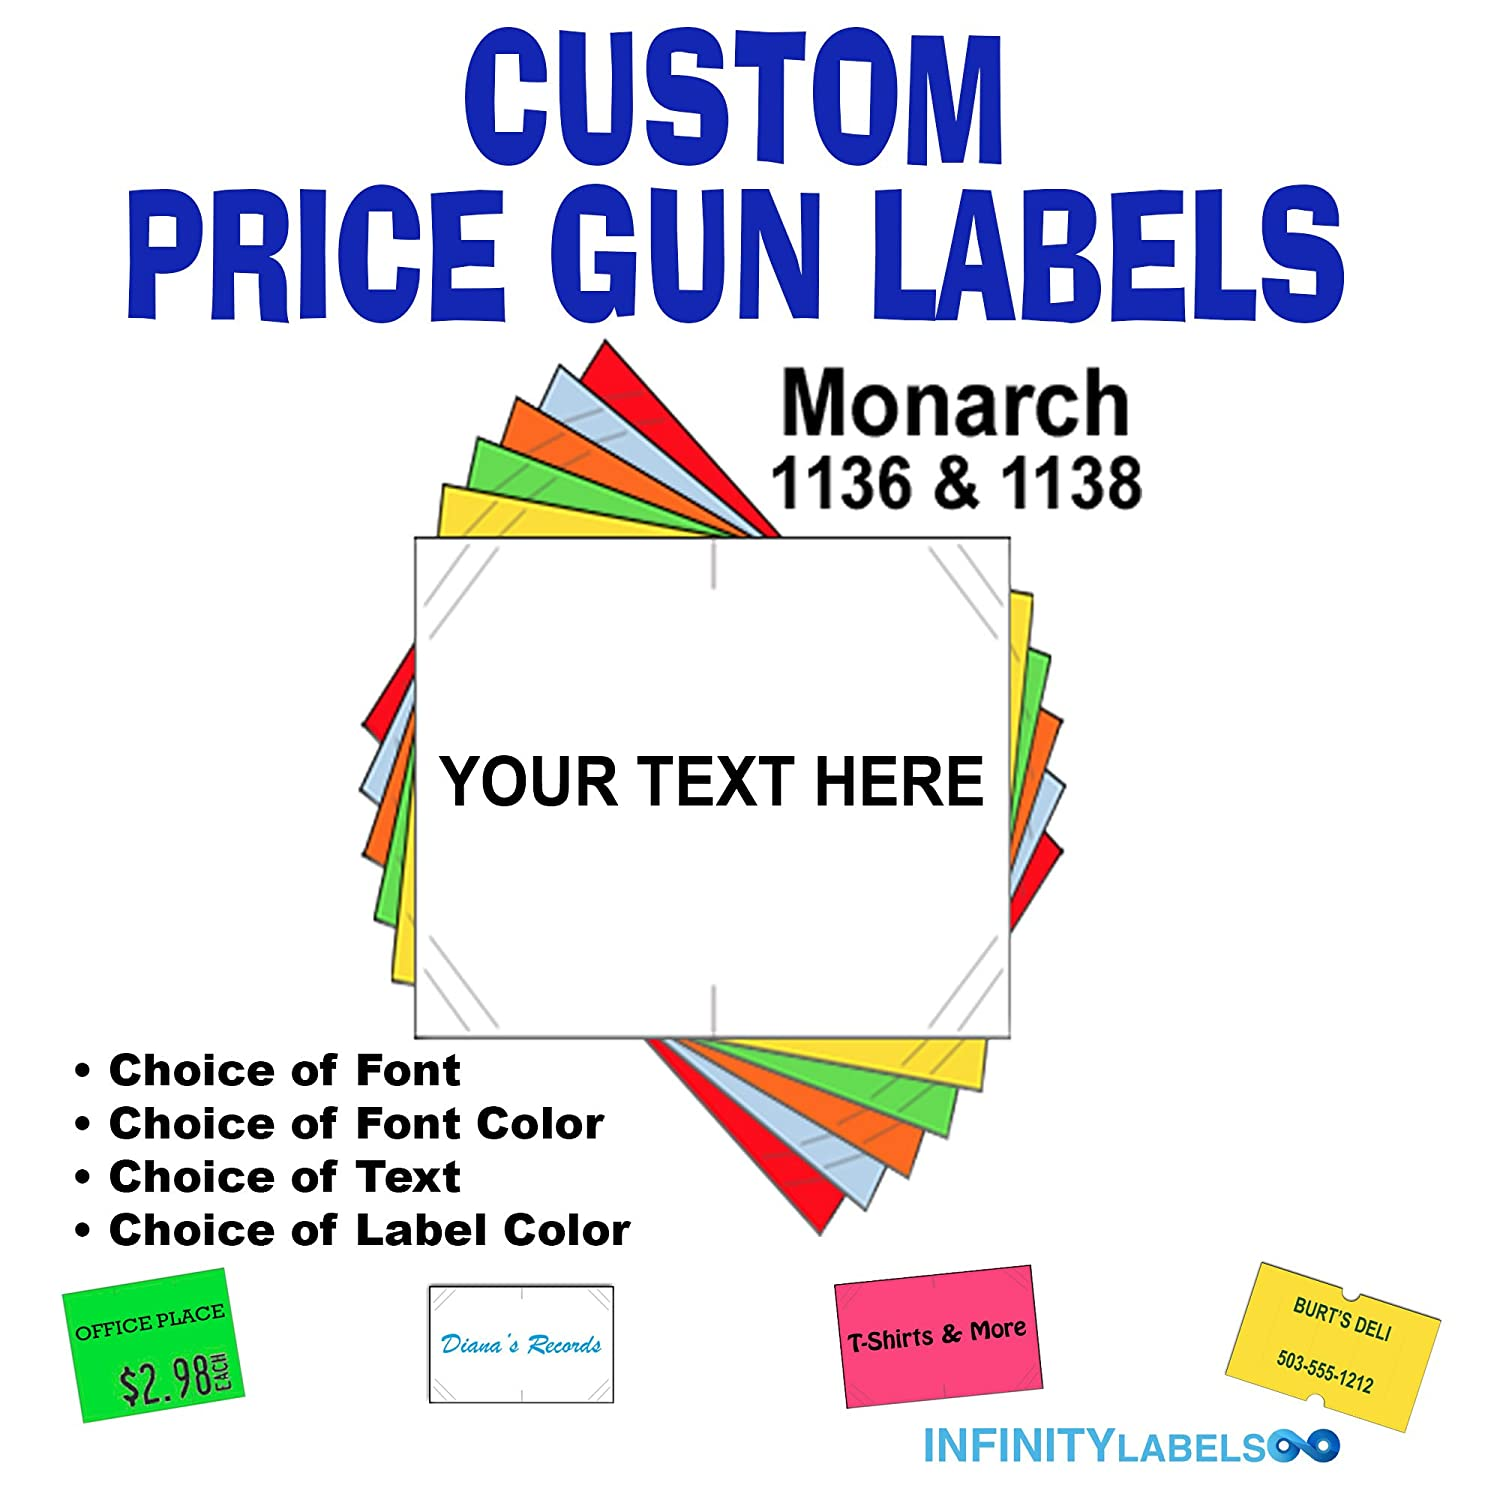 Custom price gun labels customizable monarch 1136 compatible labels to fit all monarch 1136 price guns full case 8 ink rollers you choose the colors